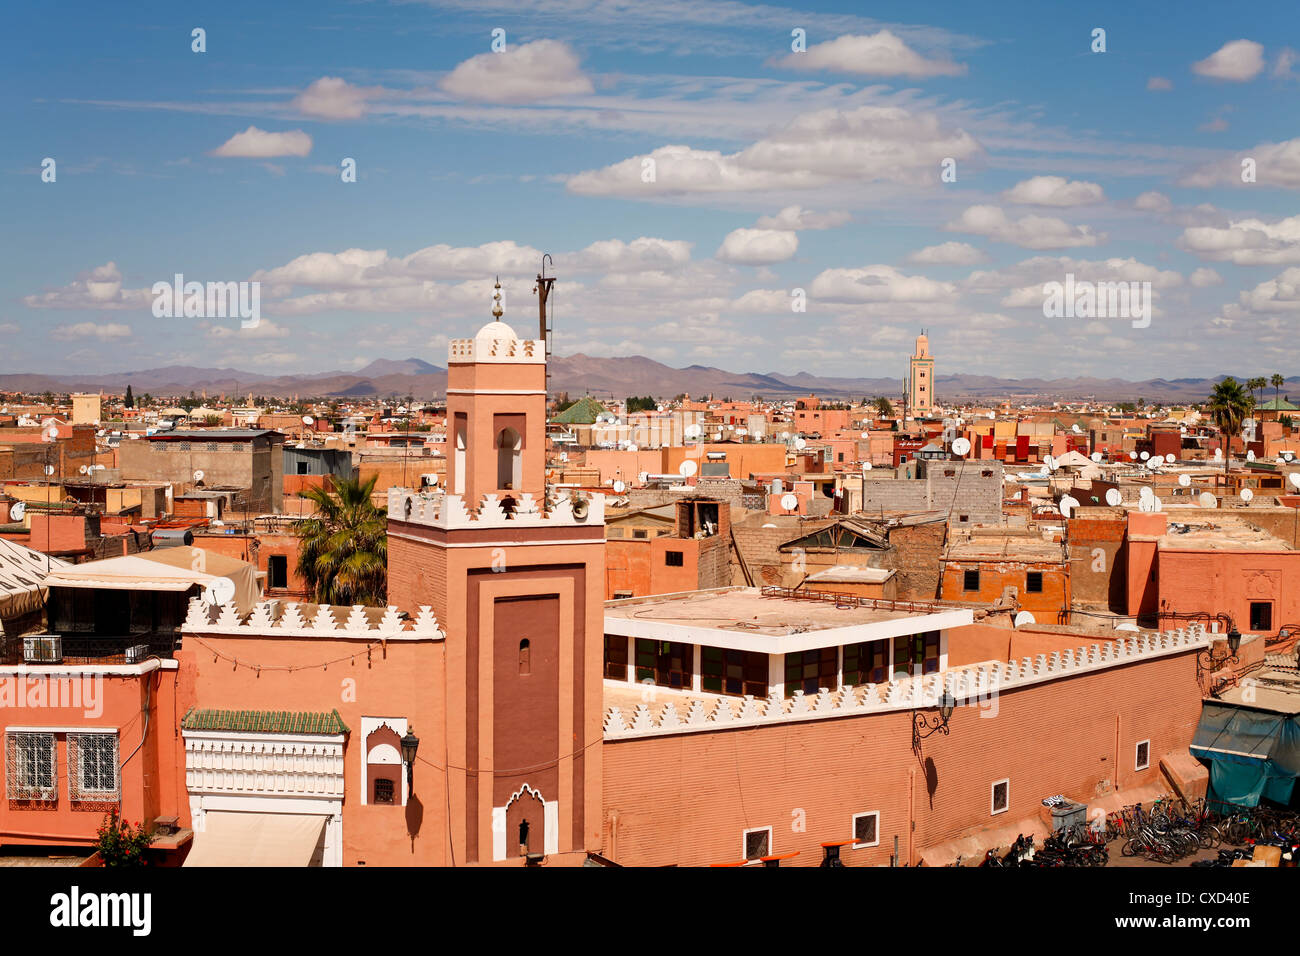 Elevated view over the Djemaa el-Fna, Marrakech (Marrakesh), Morocco, North Africa, Africa - Stock Image